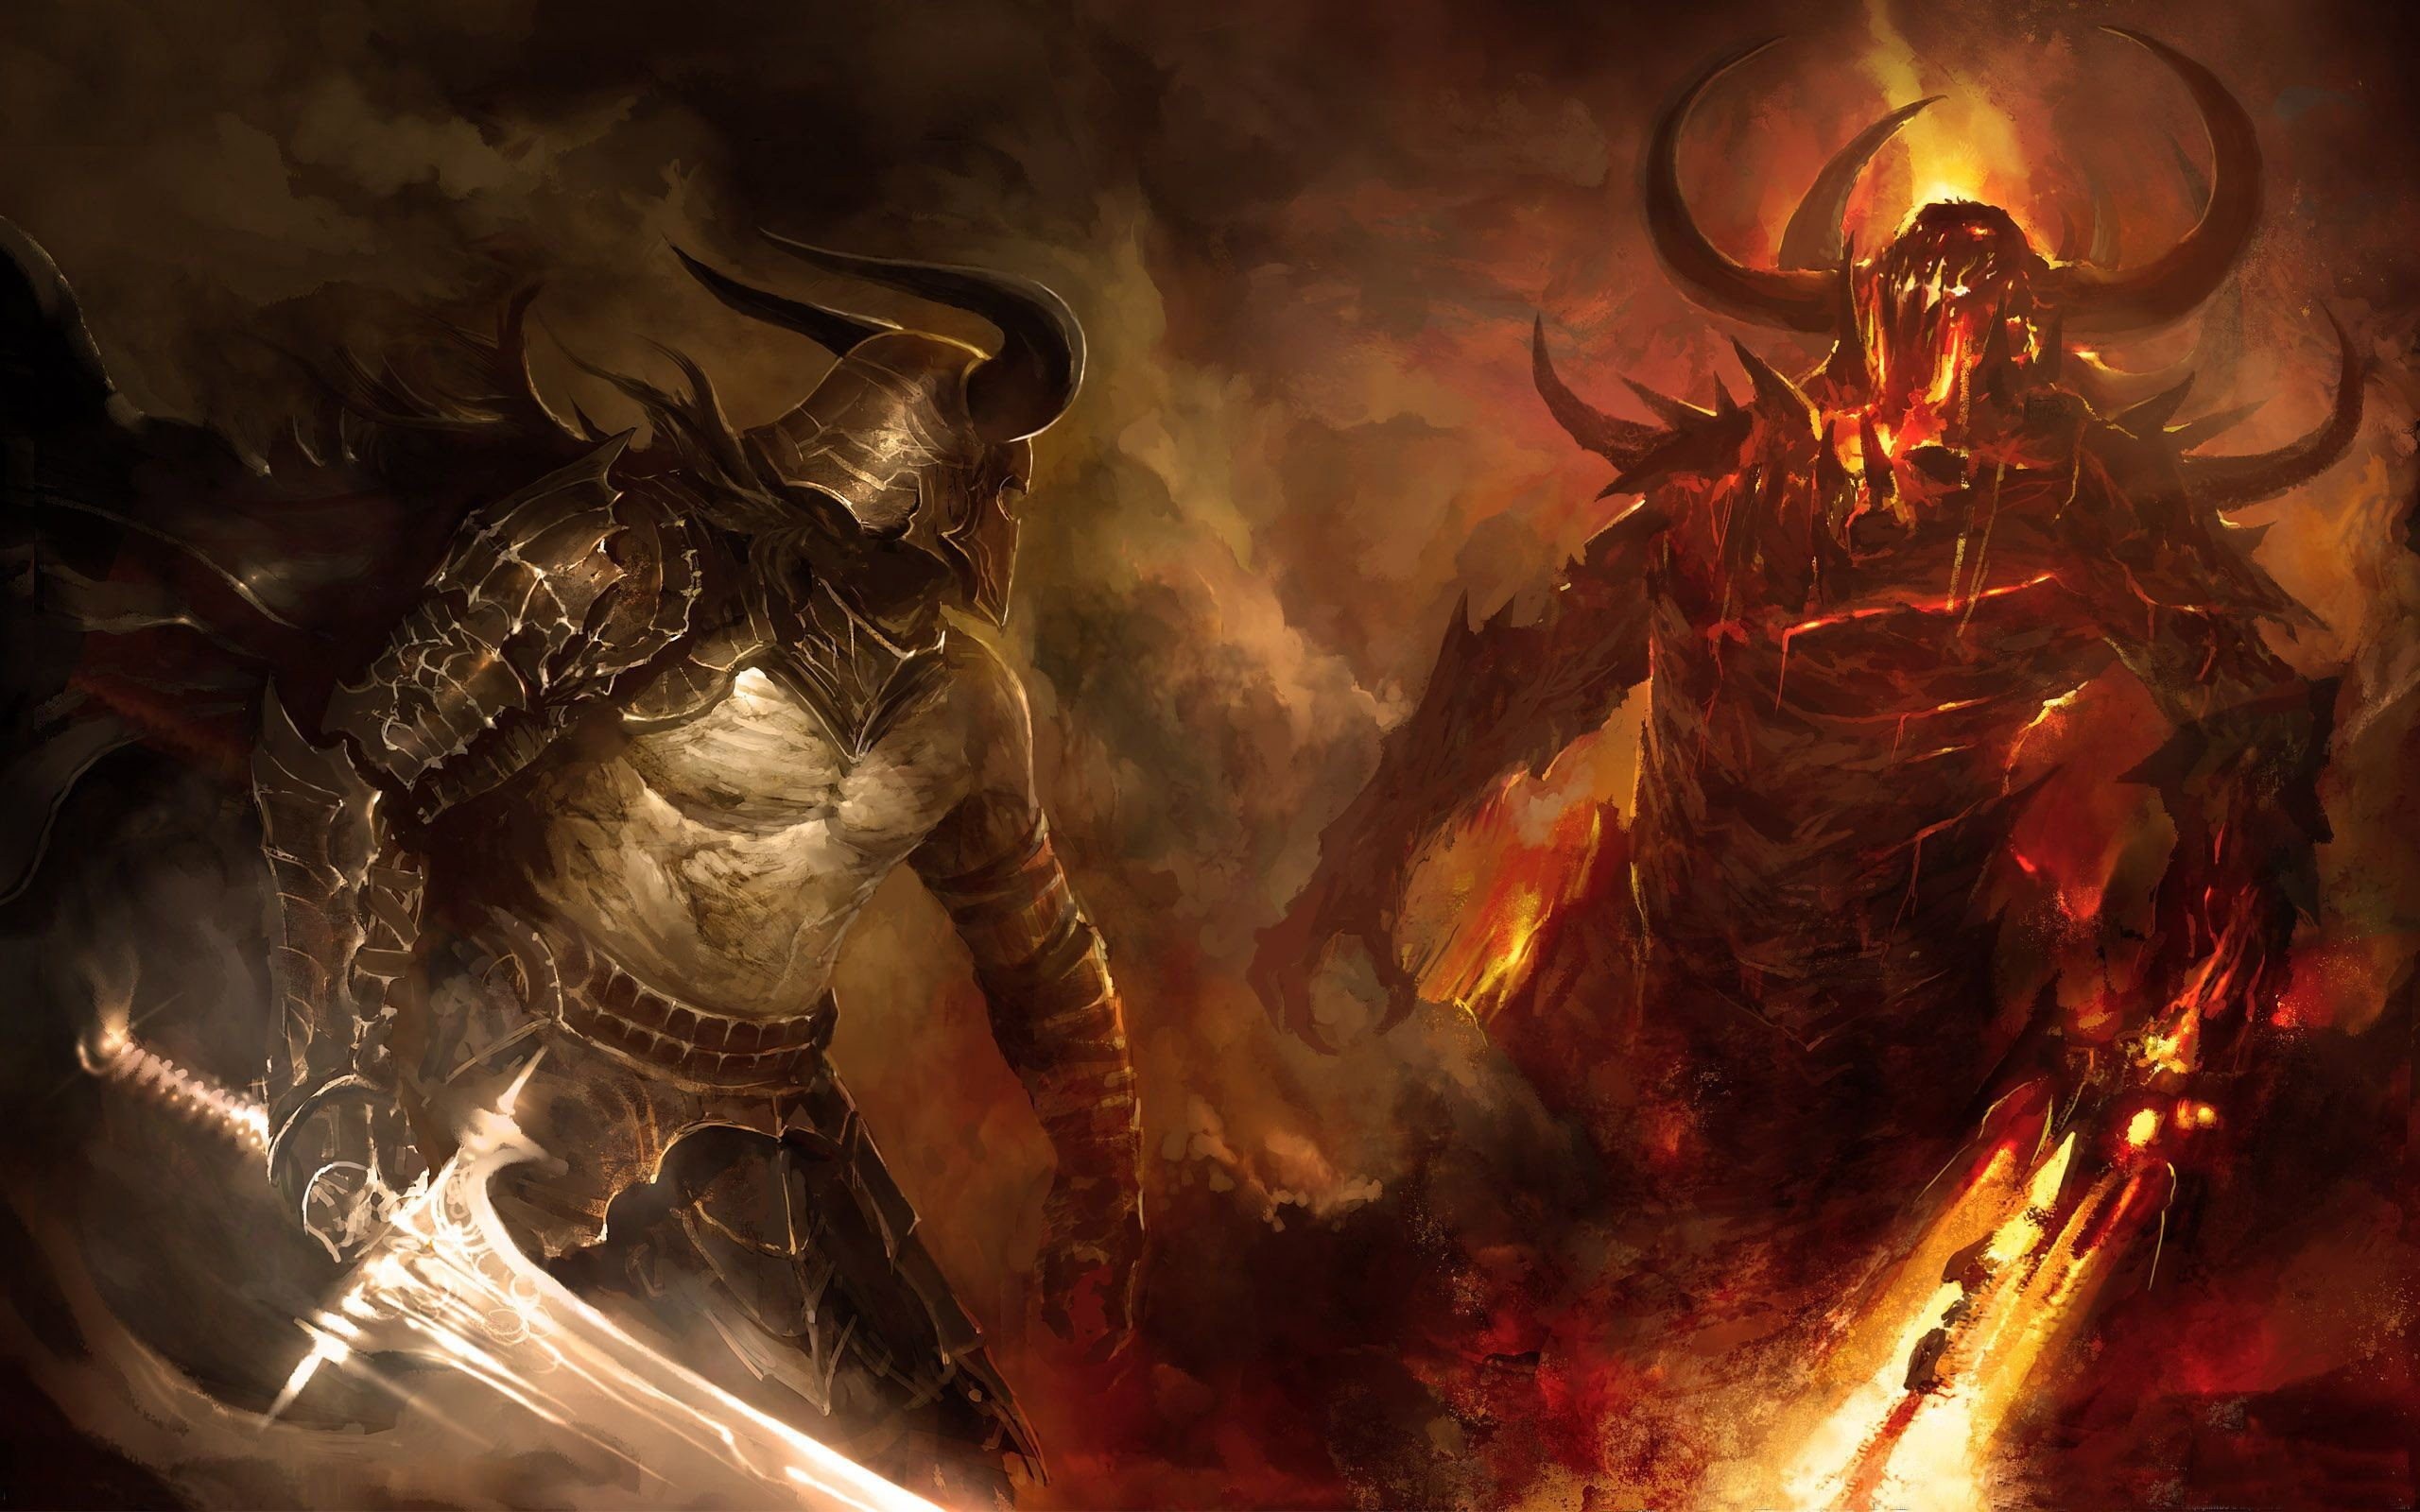 Wallpapers Demons Angel Displaying Images For Angels Vs War .